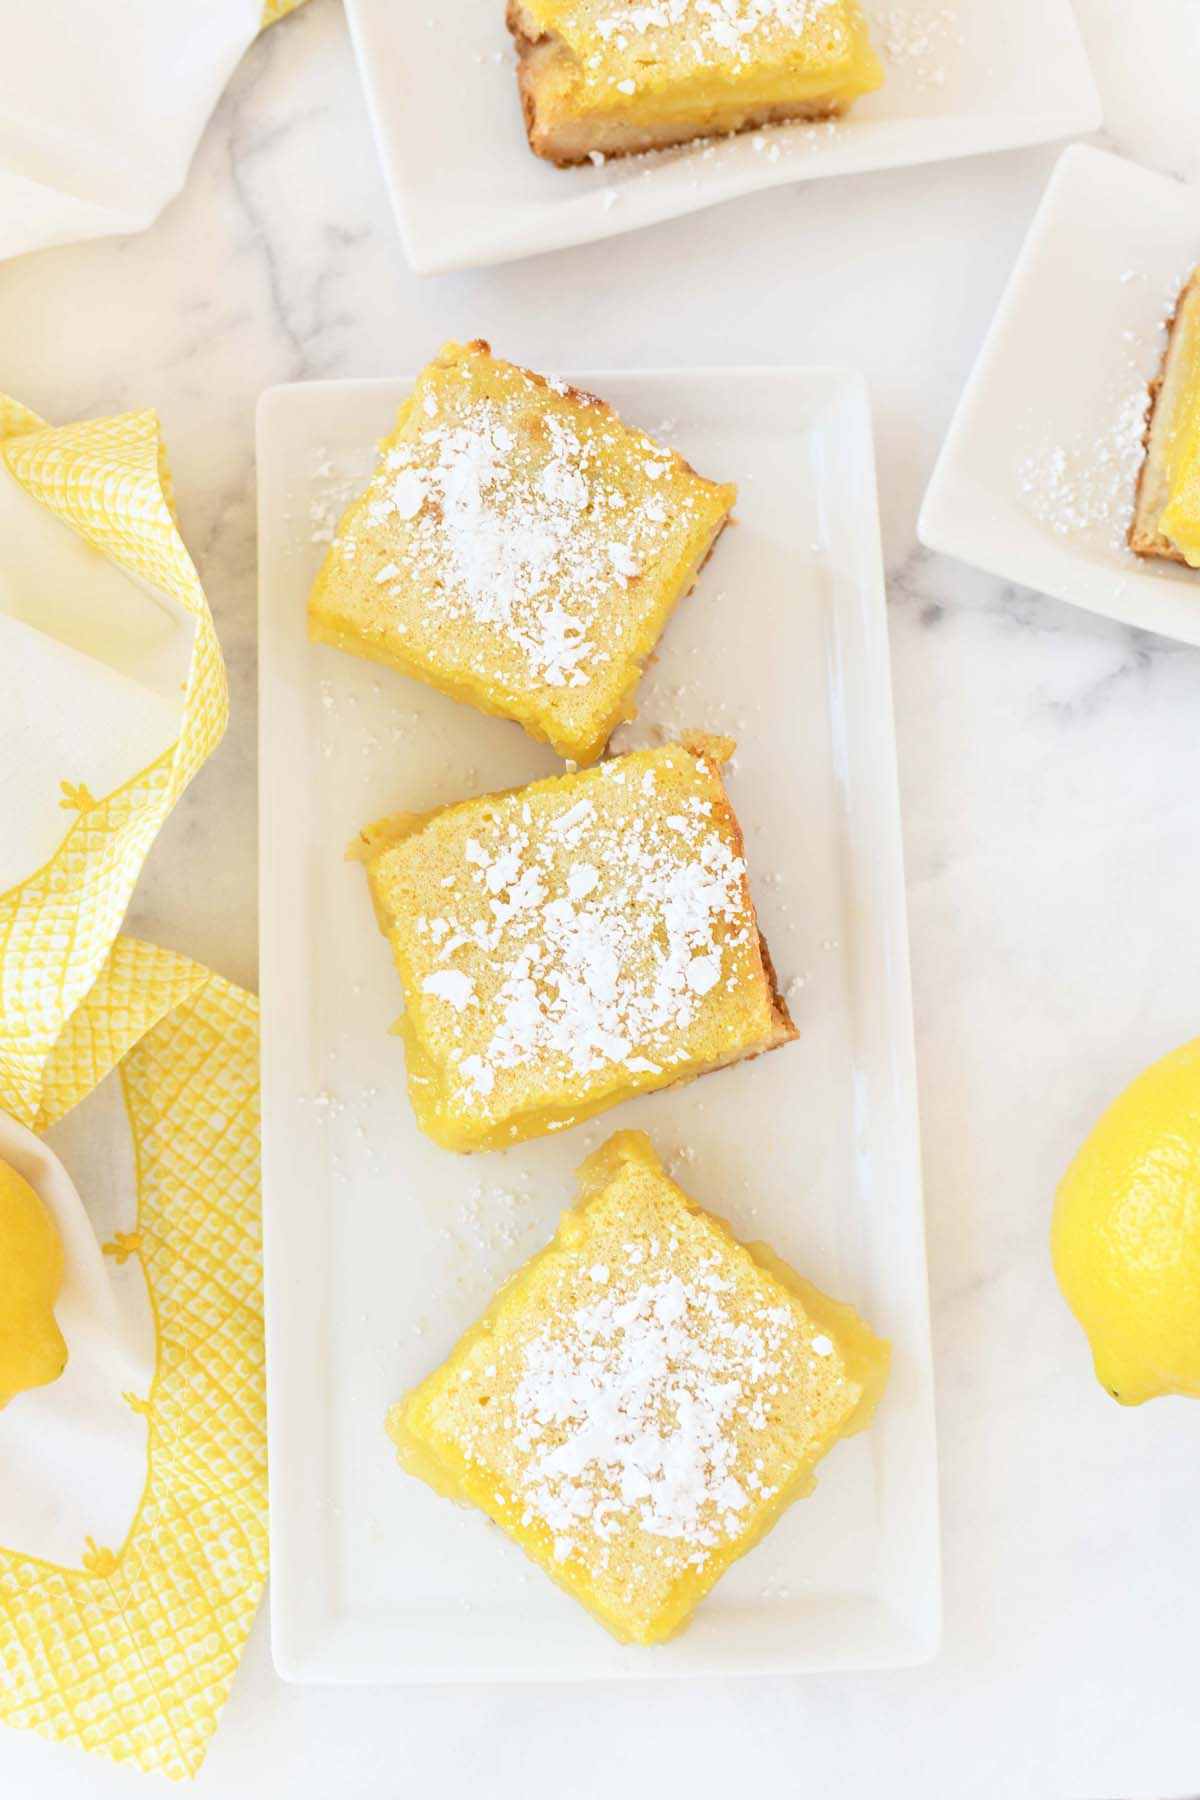 Lemon Bars cut on a white rectangle dish with a yellow napkin and fresh lemon nearby.